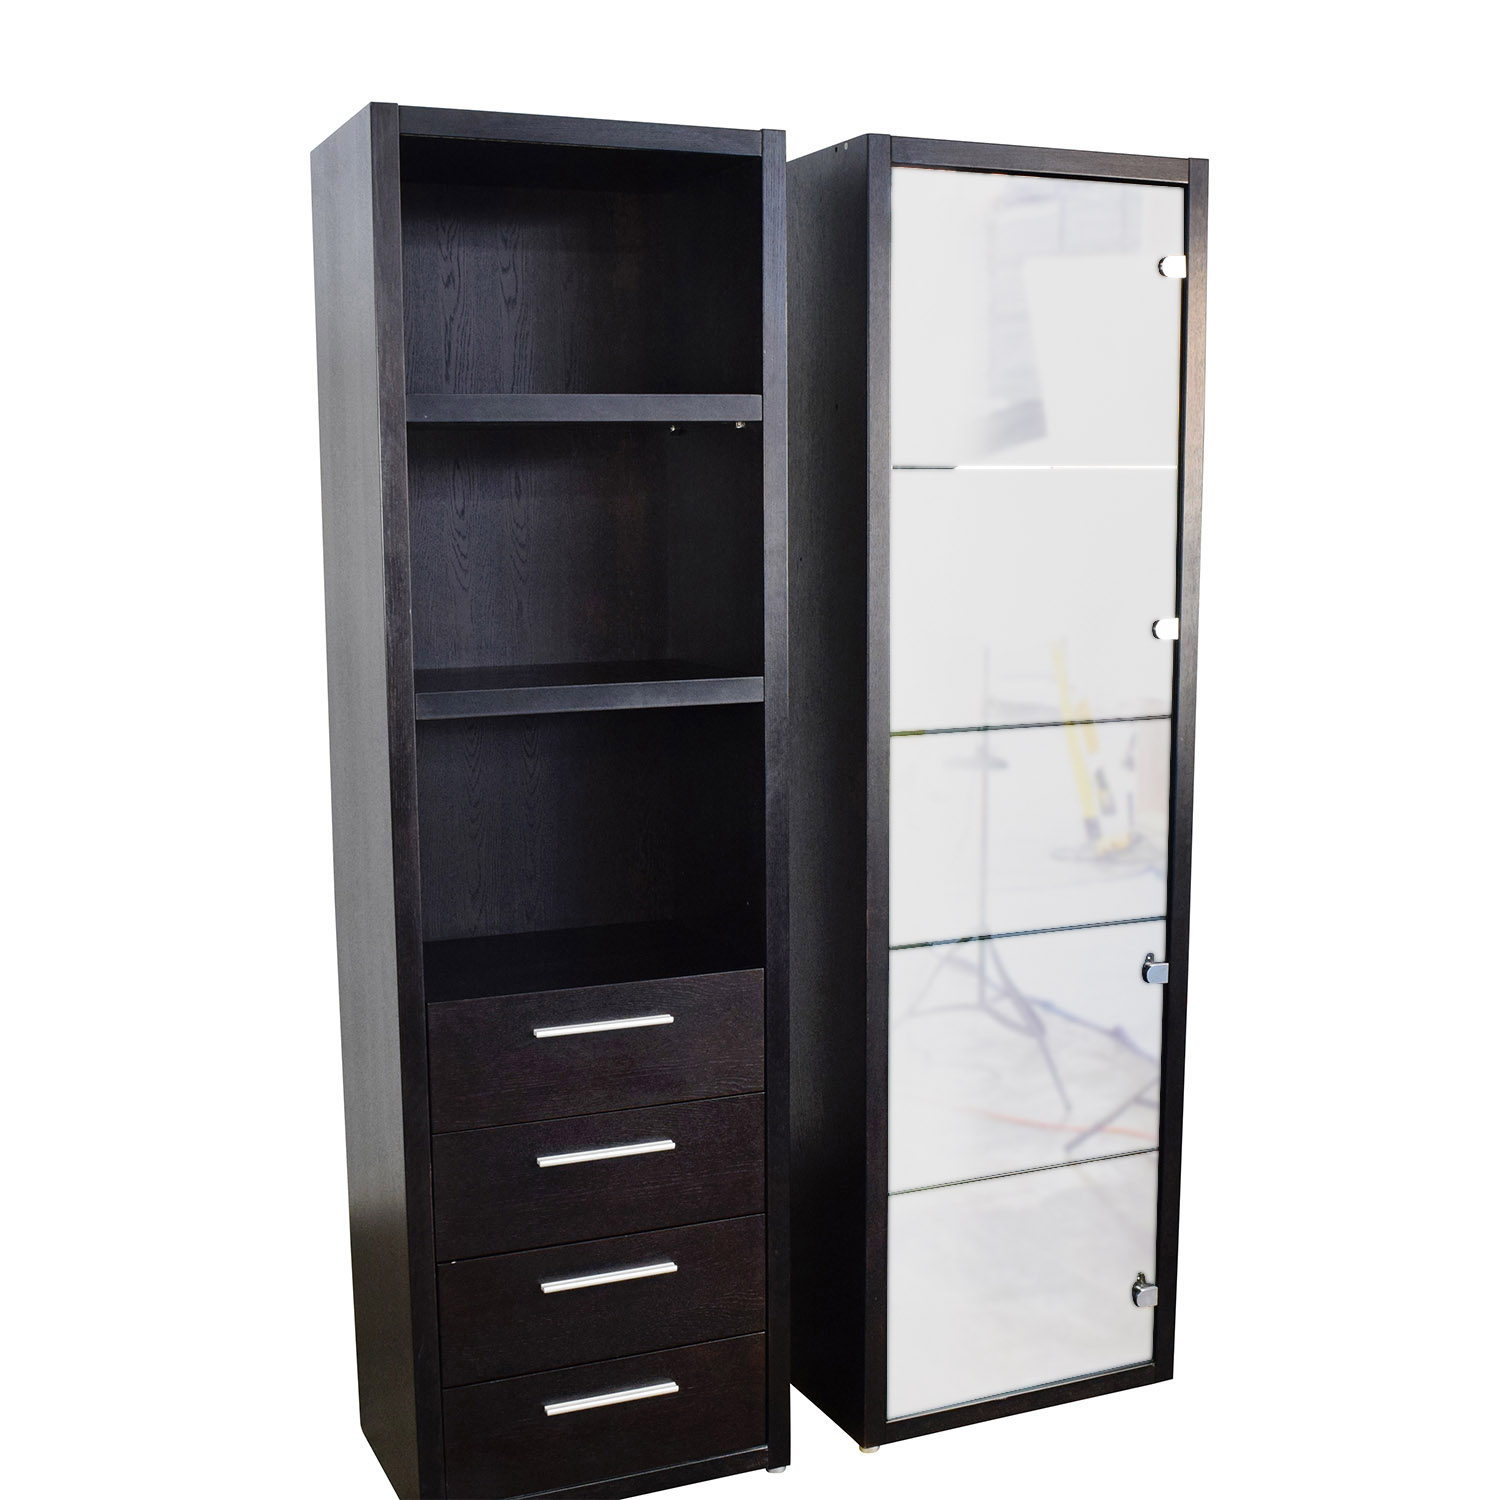 buy Ana Furniture Ana Furniture Wood Bookshelves online